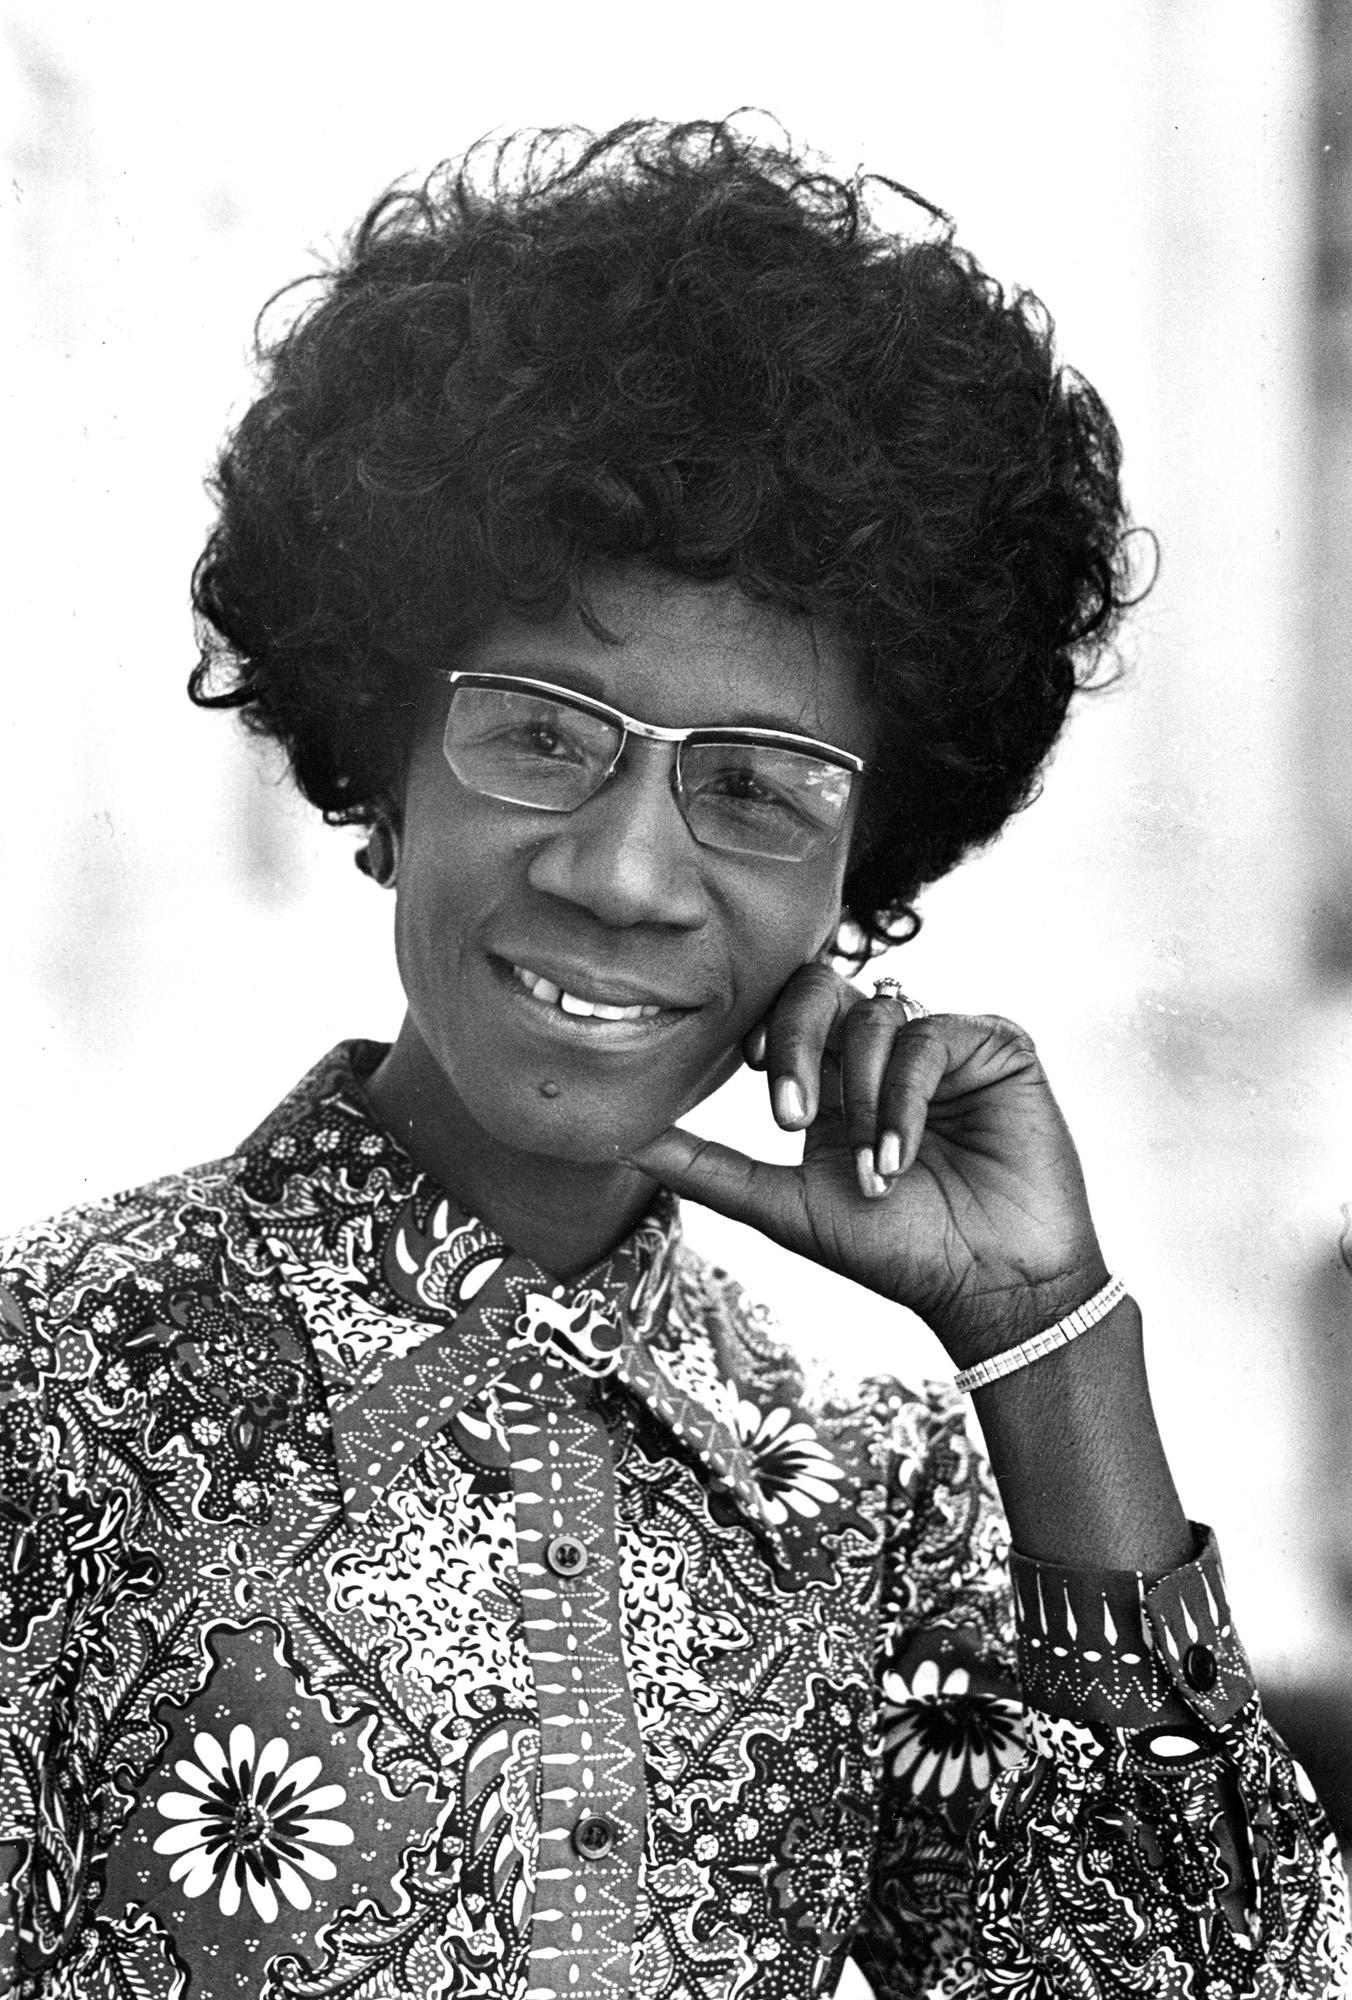 FILE- In this 1971 file photo, Congresswoman Shirley Chisholm, D-N.Y., is shown. The pioneering lawmaker will be honored with a statue in the New York City borough she served as the first black woman elected to the U.S. Congress. New York City officials announced Friday, Nov. 30, 2018, that a monument to Chisholm will be installed at the entrance to Brooklyn's Prospect Park. (AP Photo)